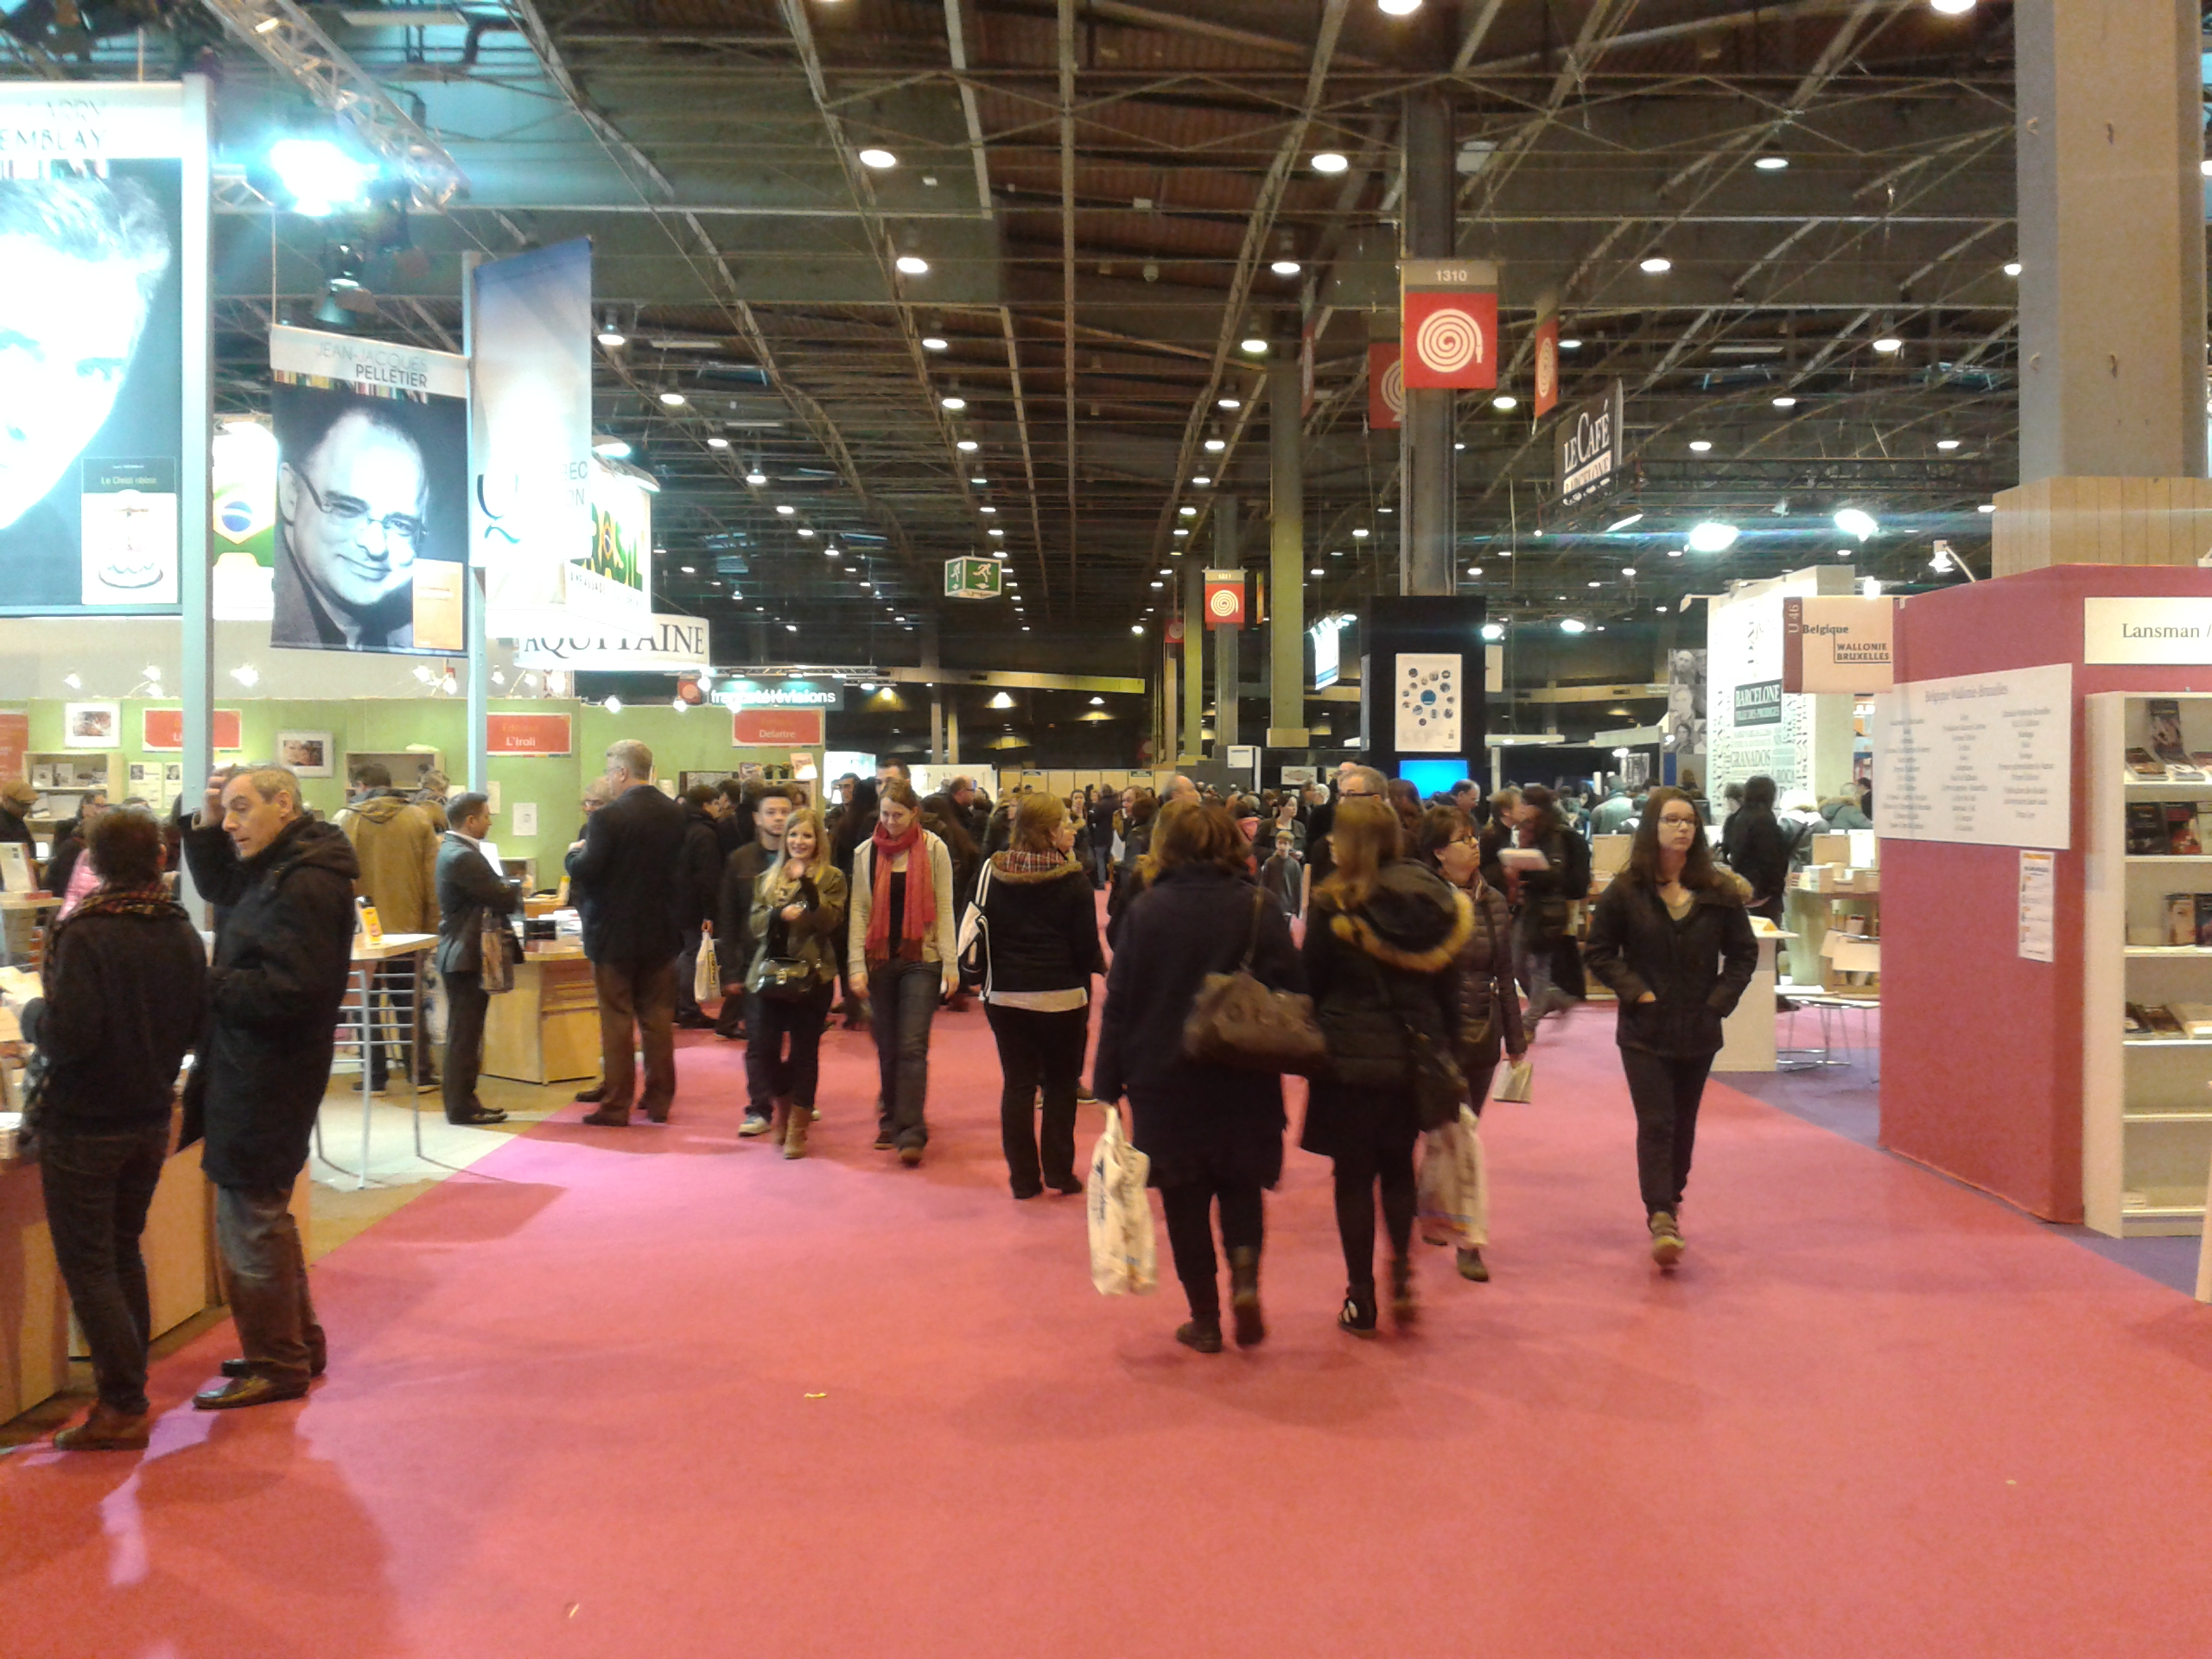 Le salon du livre paris on y va for Salon paris mars 2017